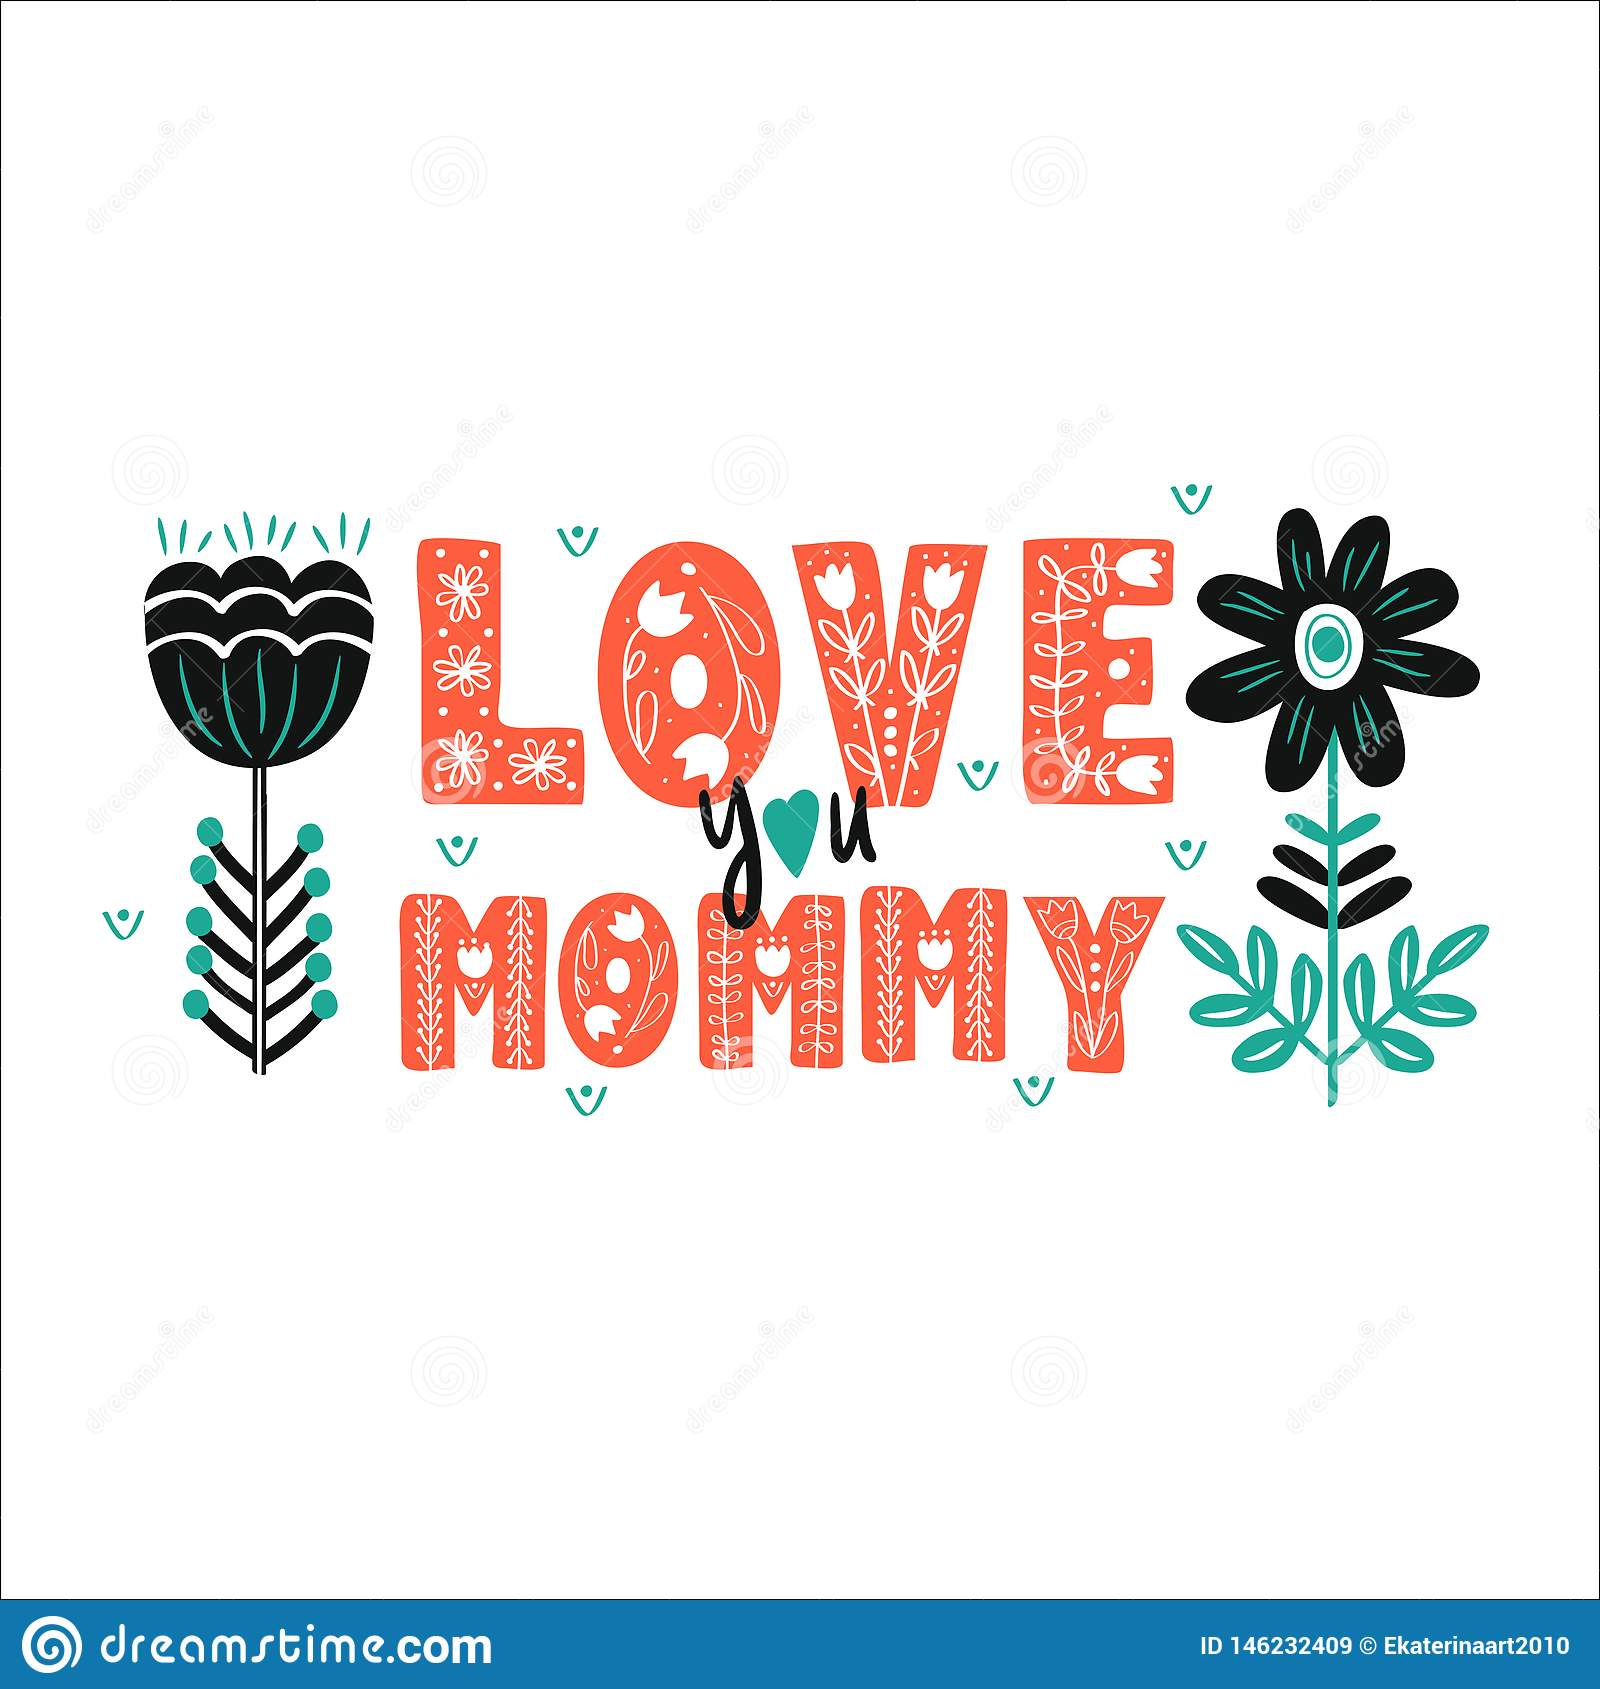 I love you Mommy - hand drawn lettering folk